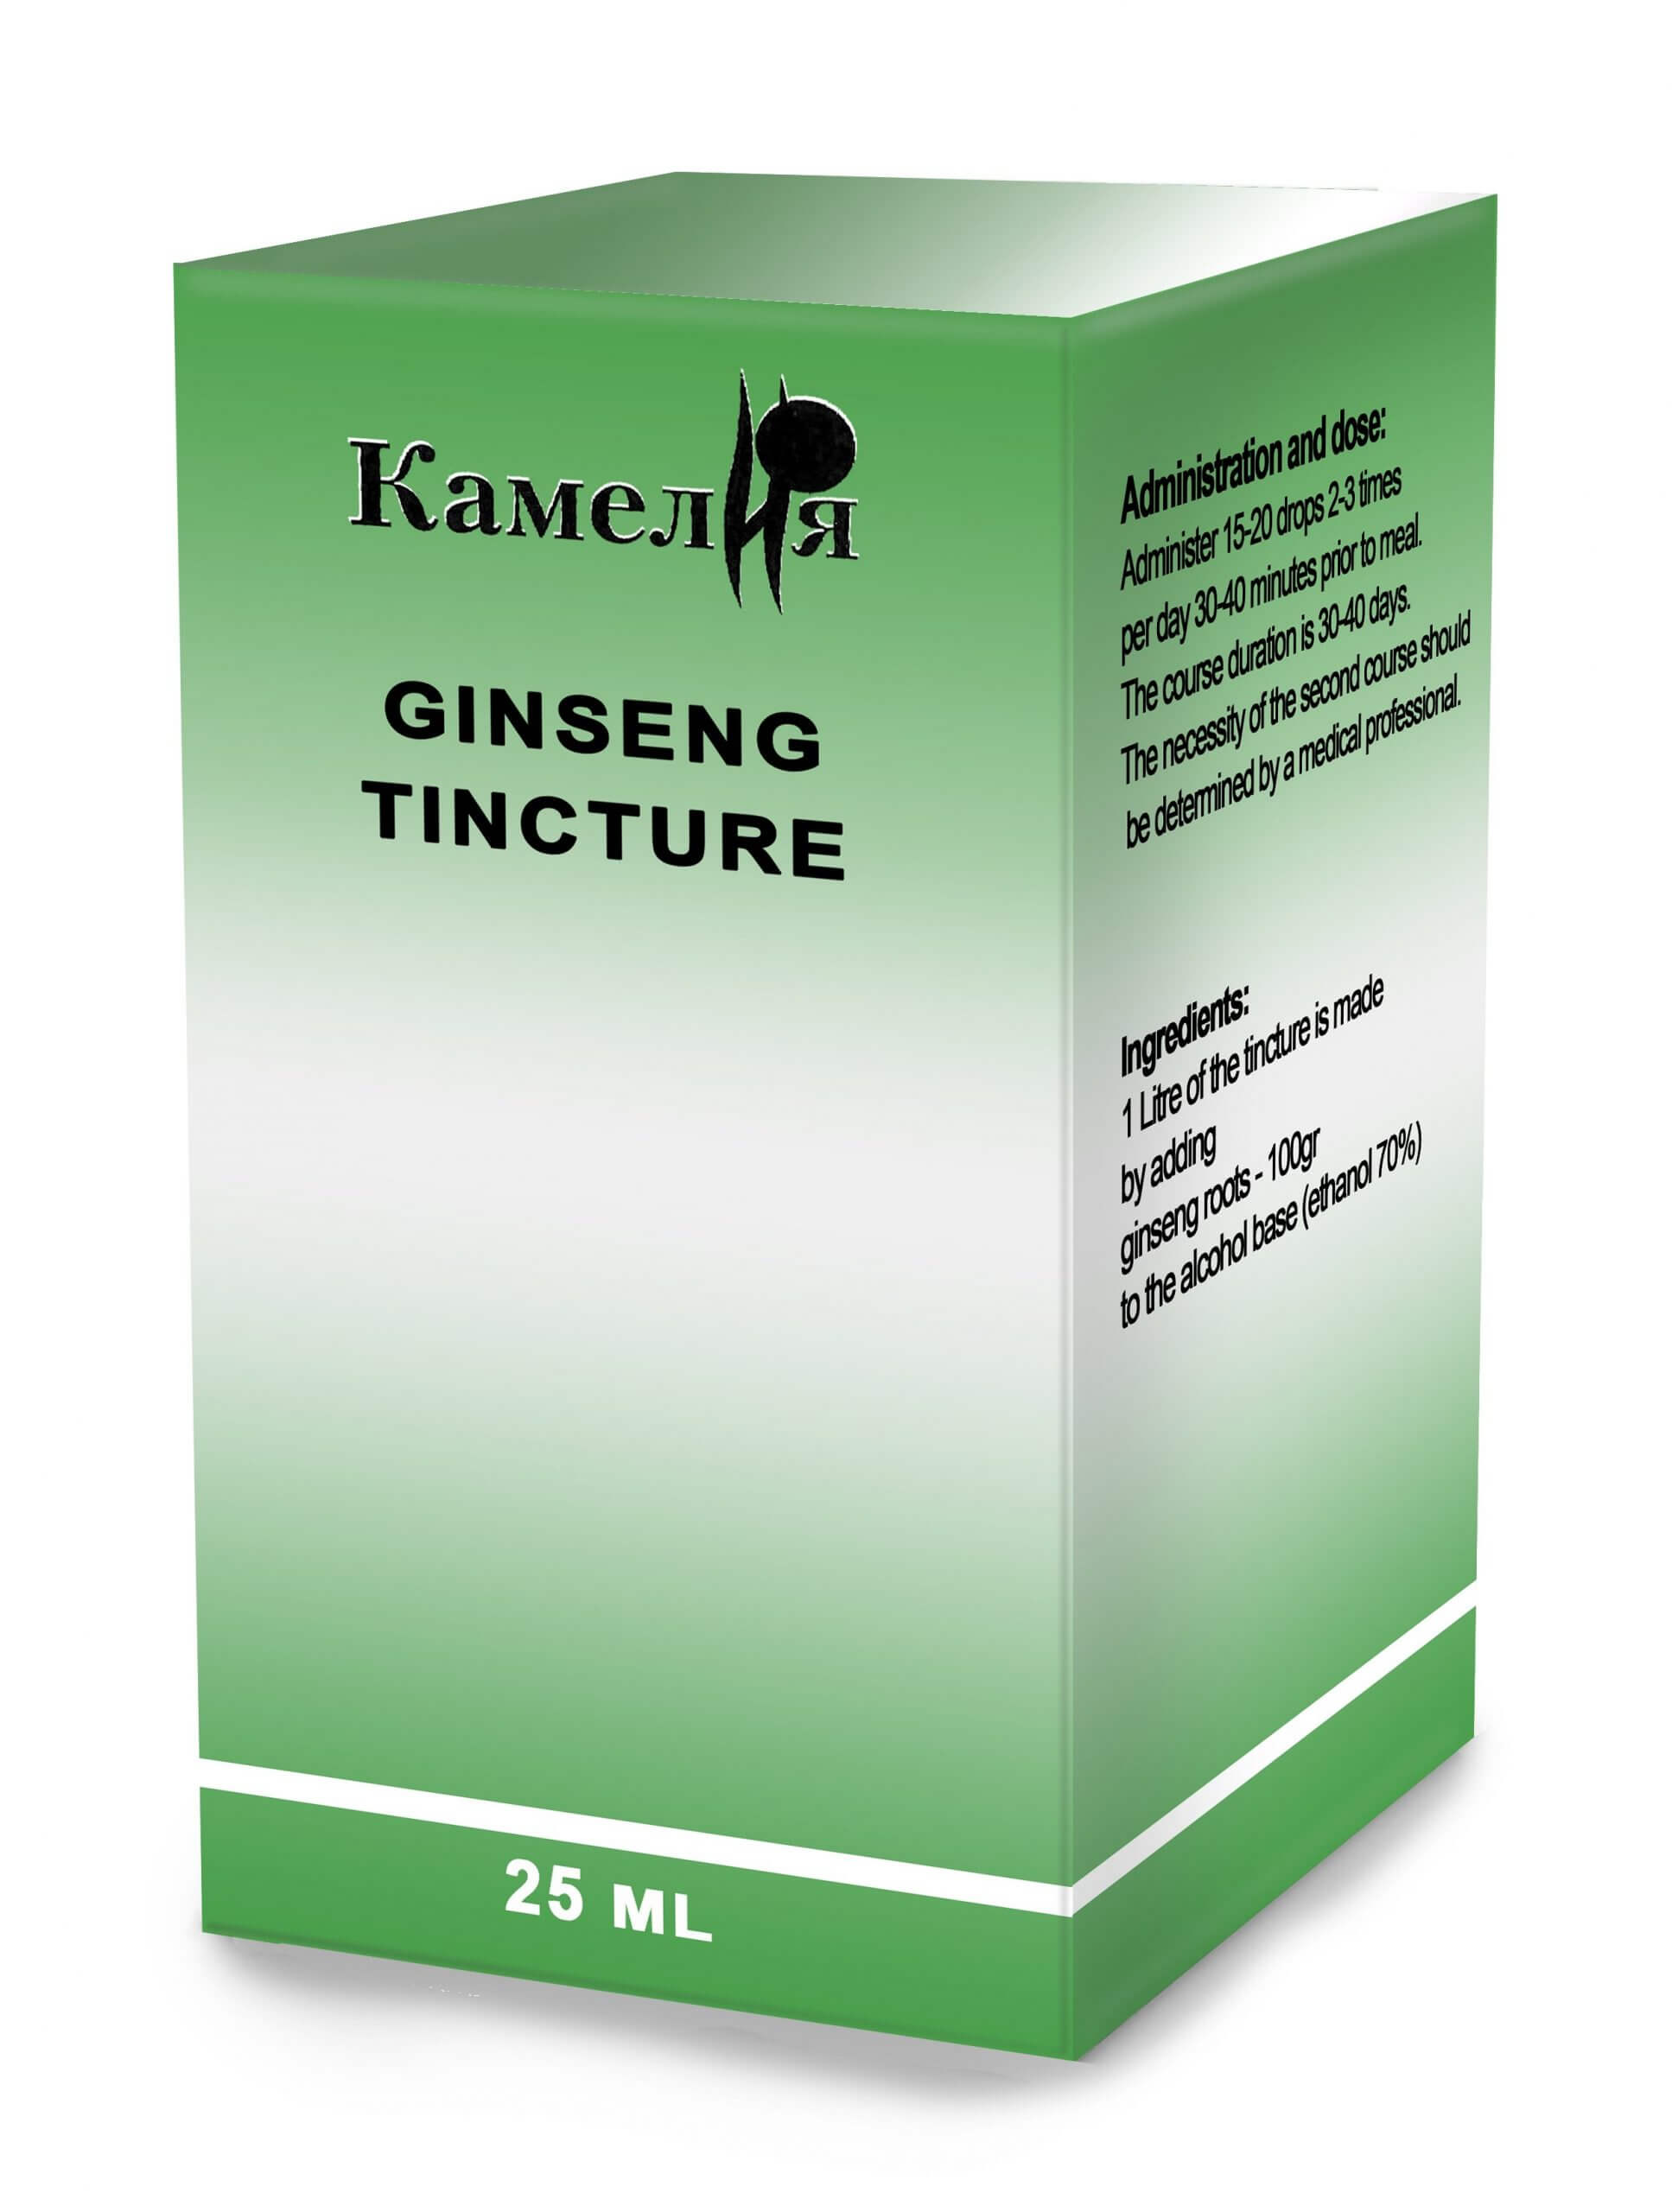 ginseng-tincture-package